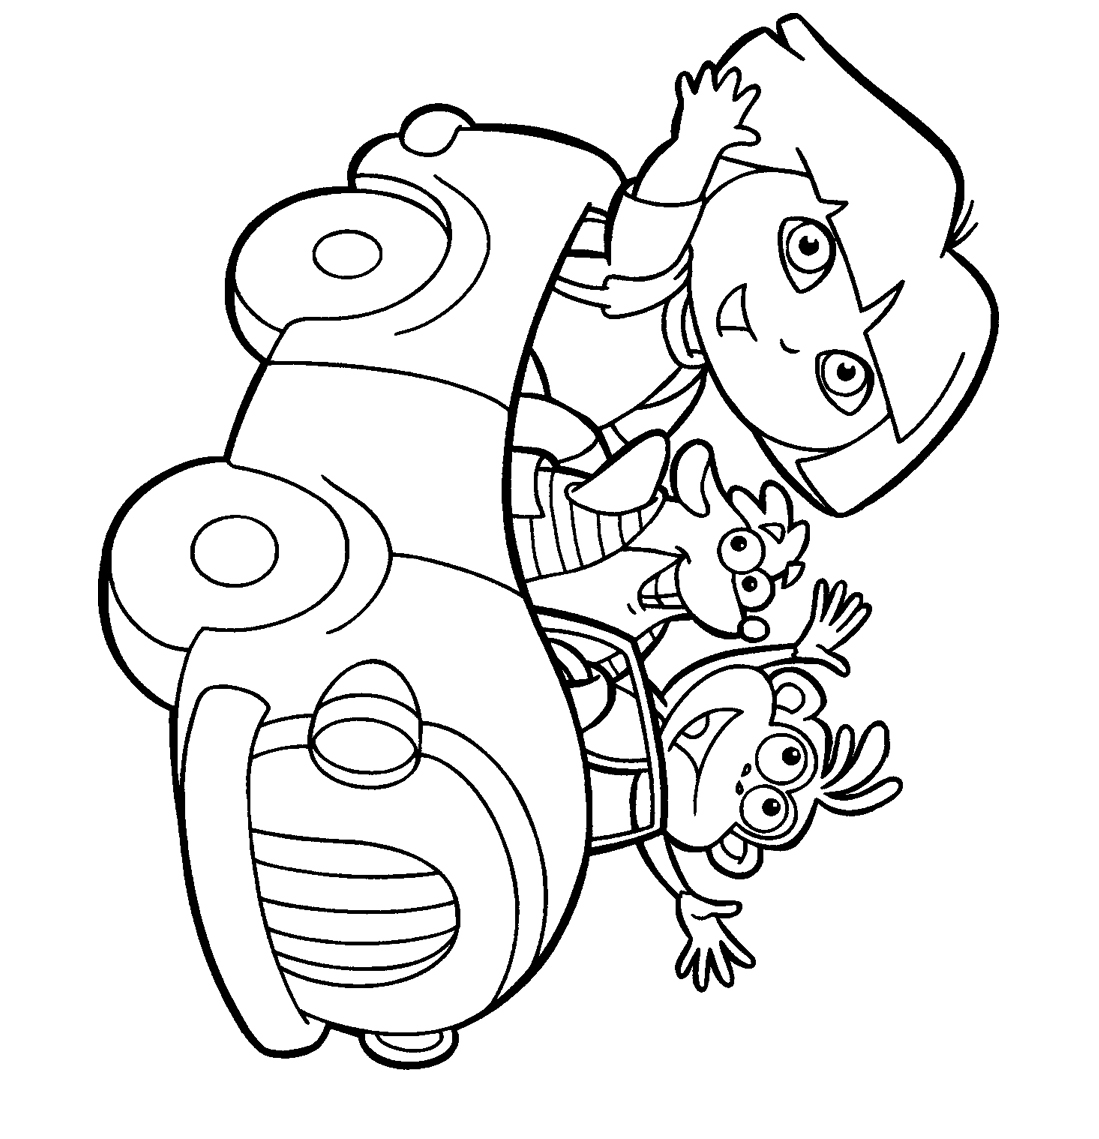 pictures of dora to color joe blog dora the explorer coloring pages to print pictures dora color of to